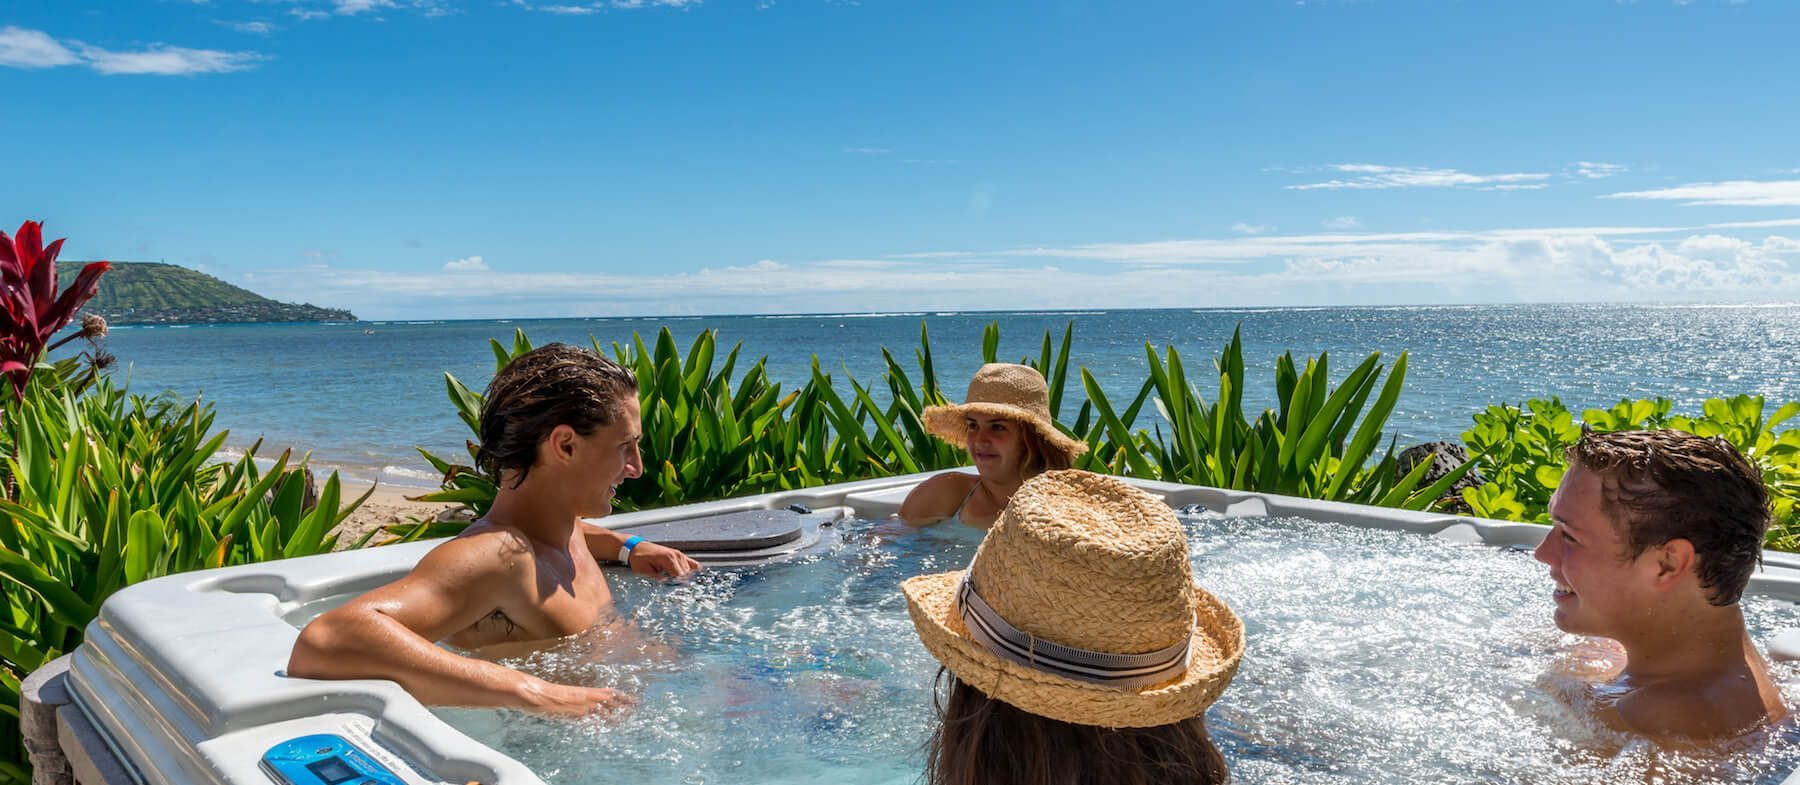 People In A Hot Tub During An Oahu Family Vacation